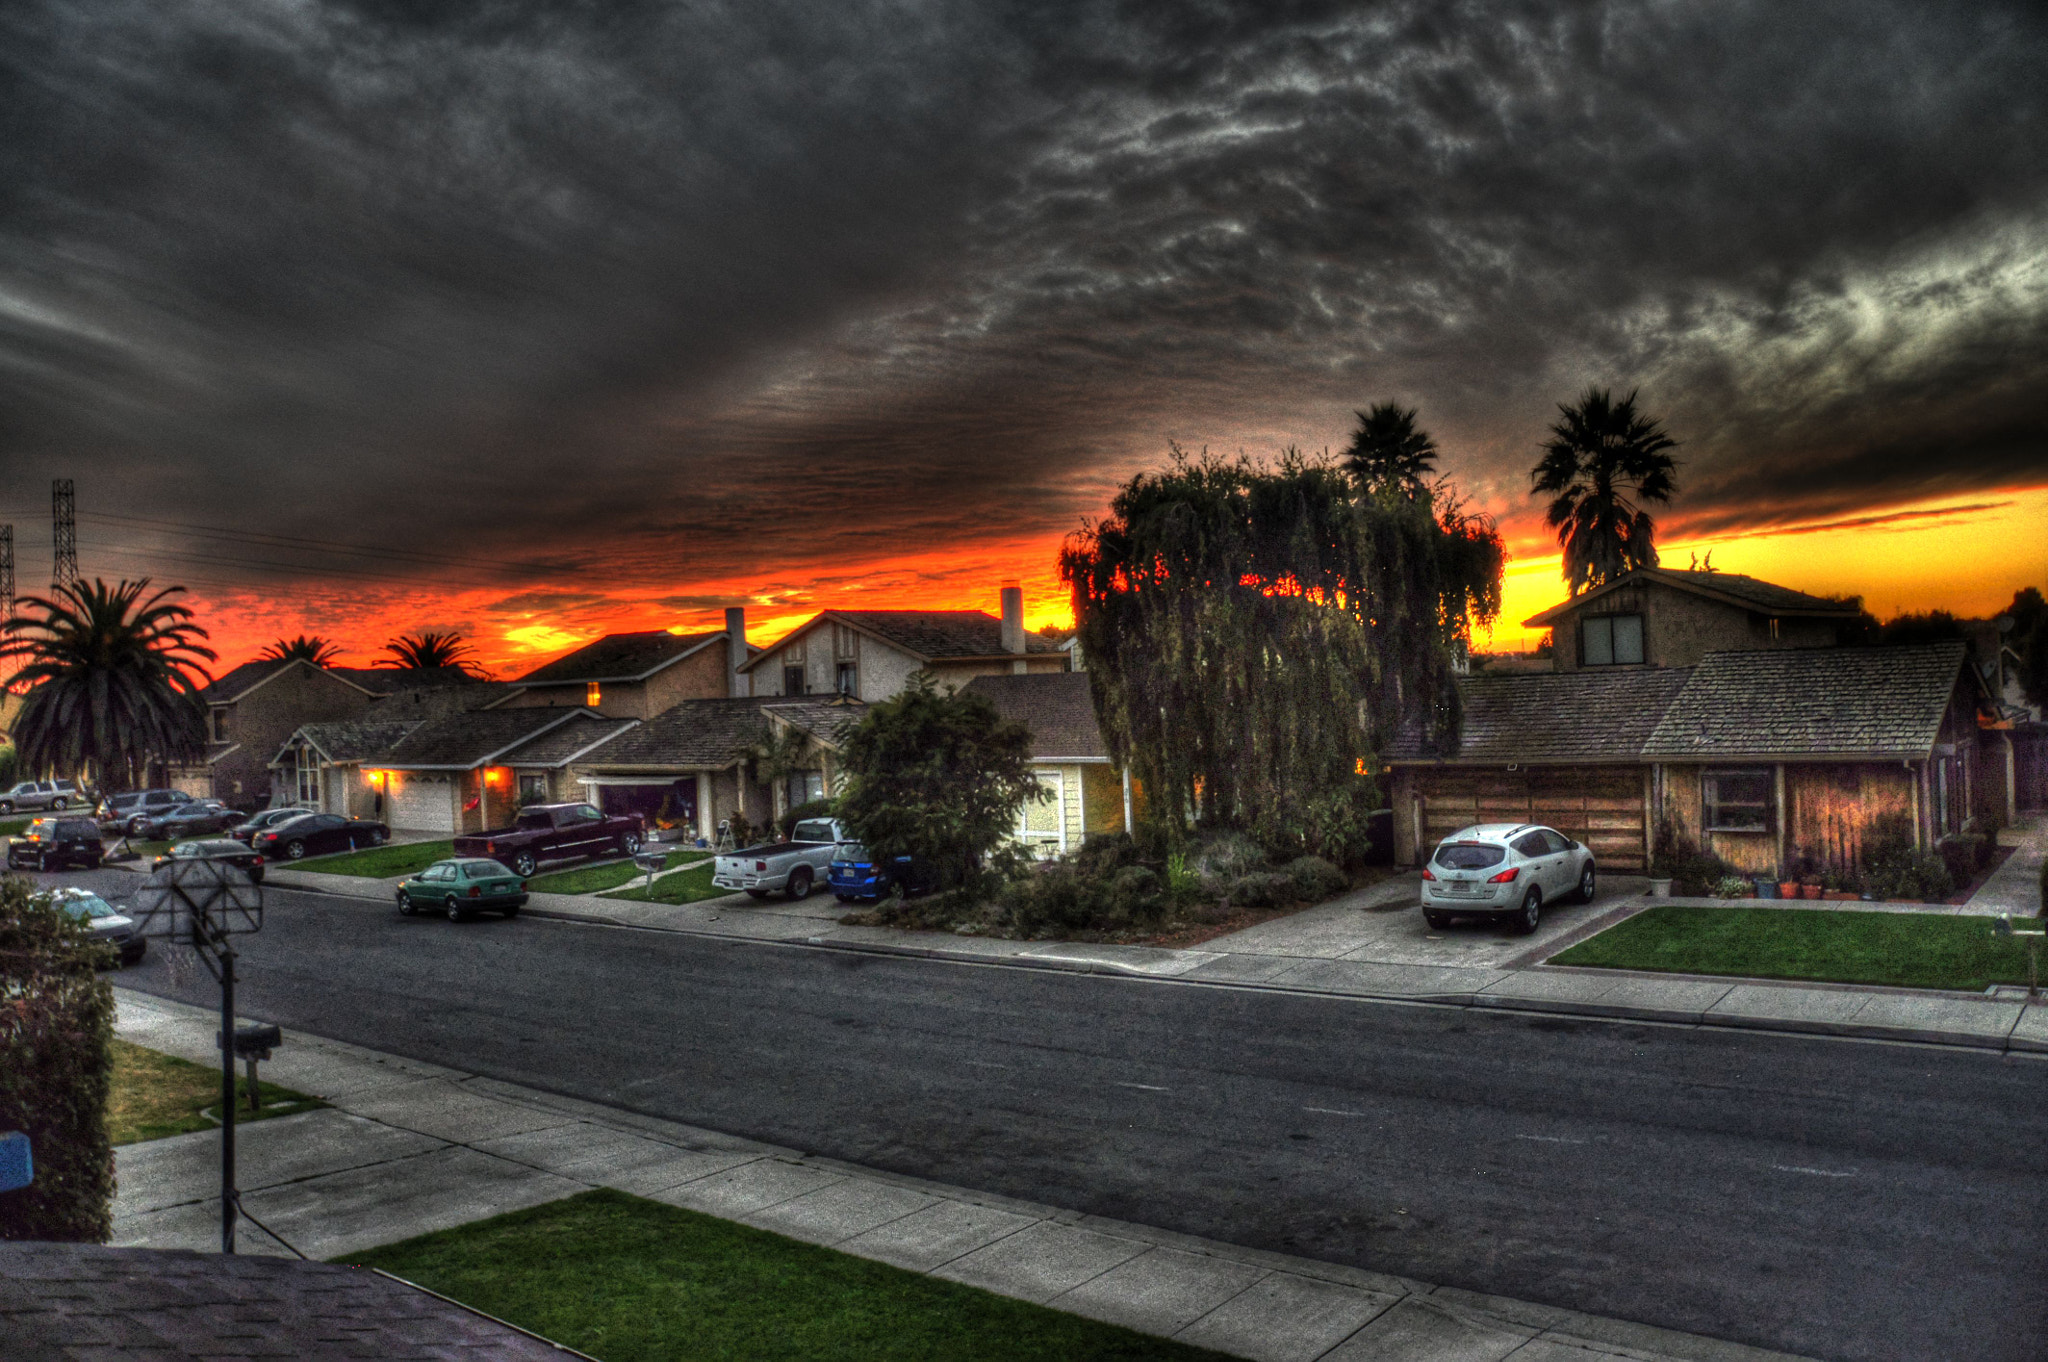 Photograph Bush st sunset HDR by Daniel Hulter on 500px